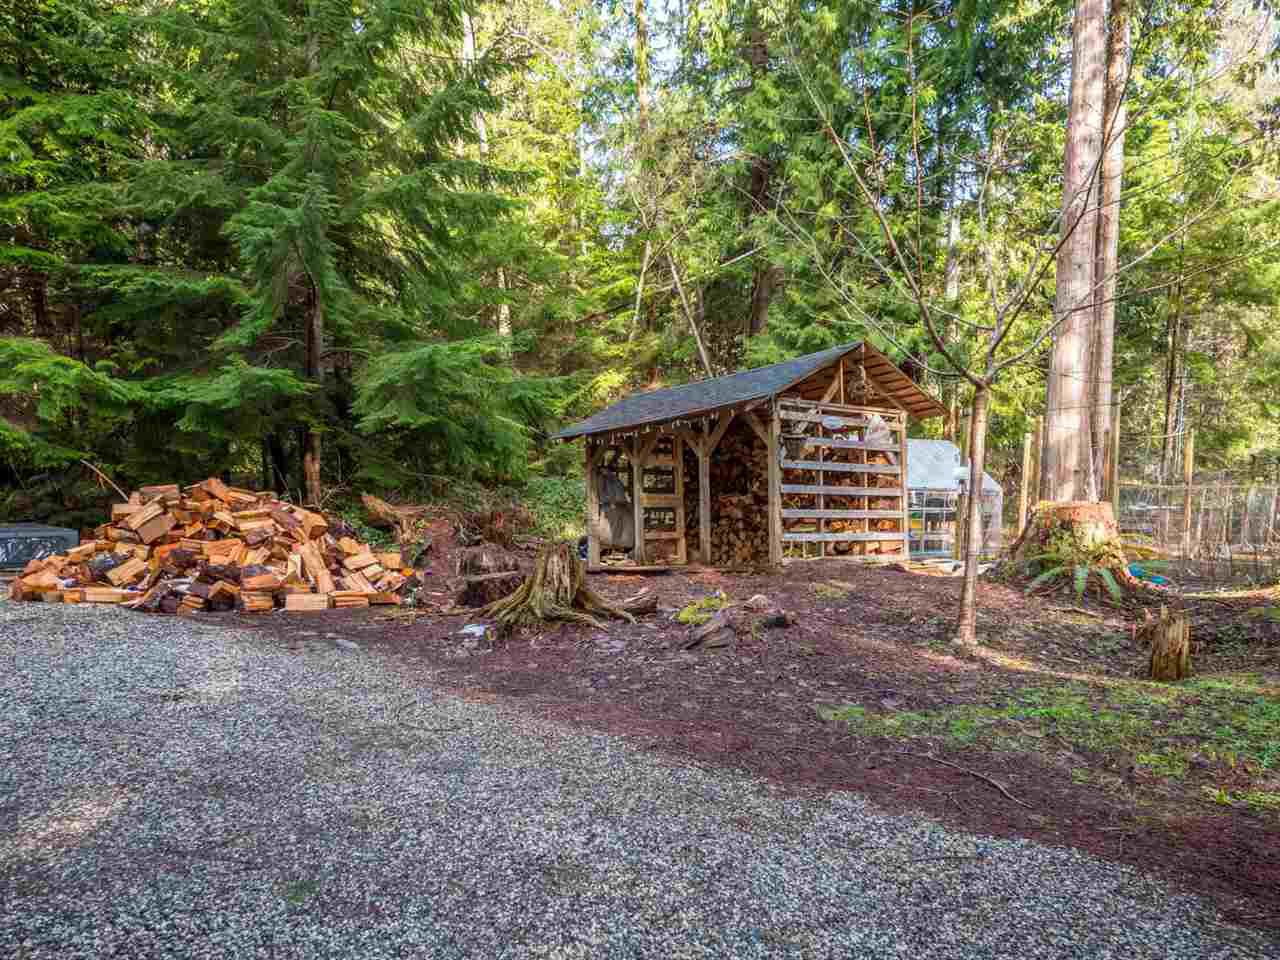 Photo 15: Photos: 1421 MARGARET Road: Roberts Creek House for sale (Sunshine Coast)  : MLS®# R2243186